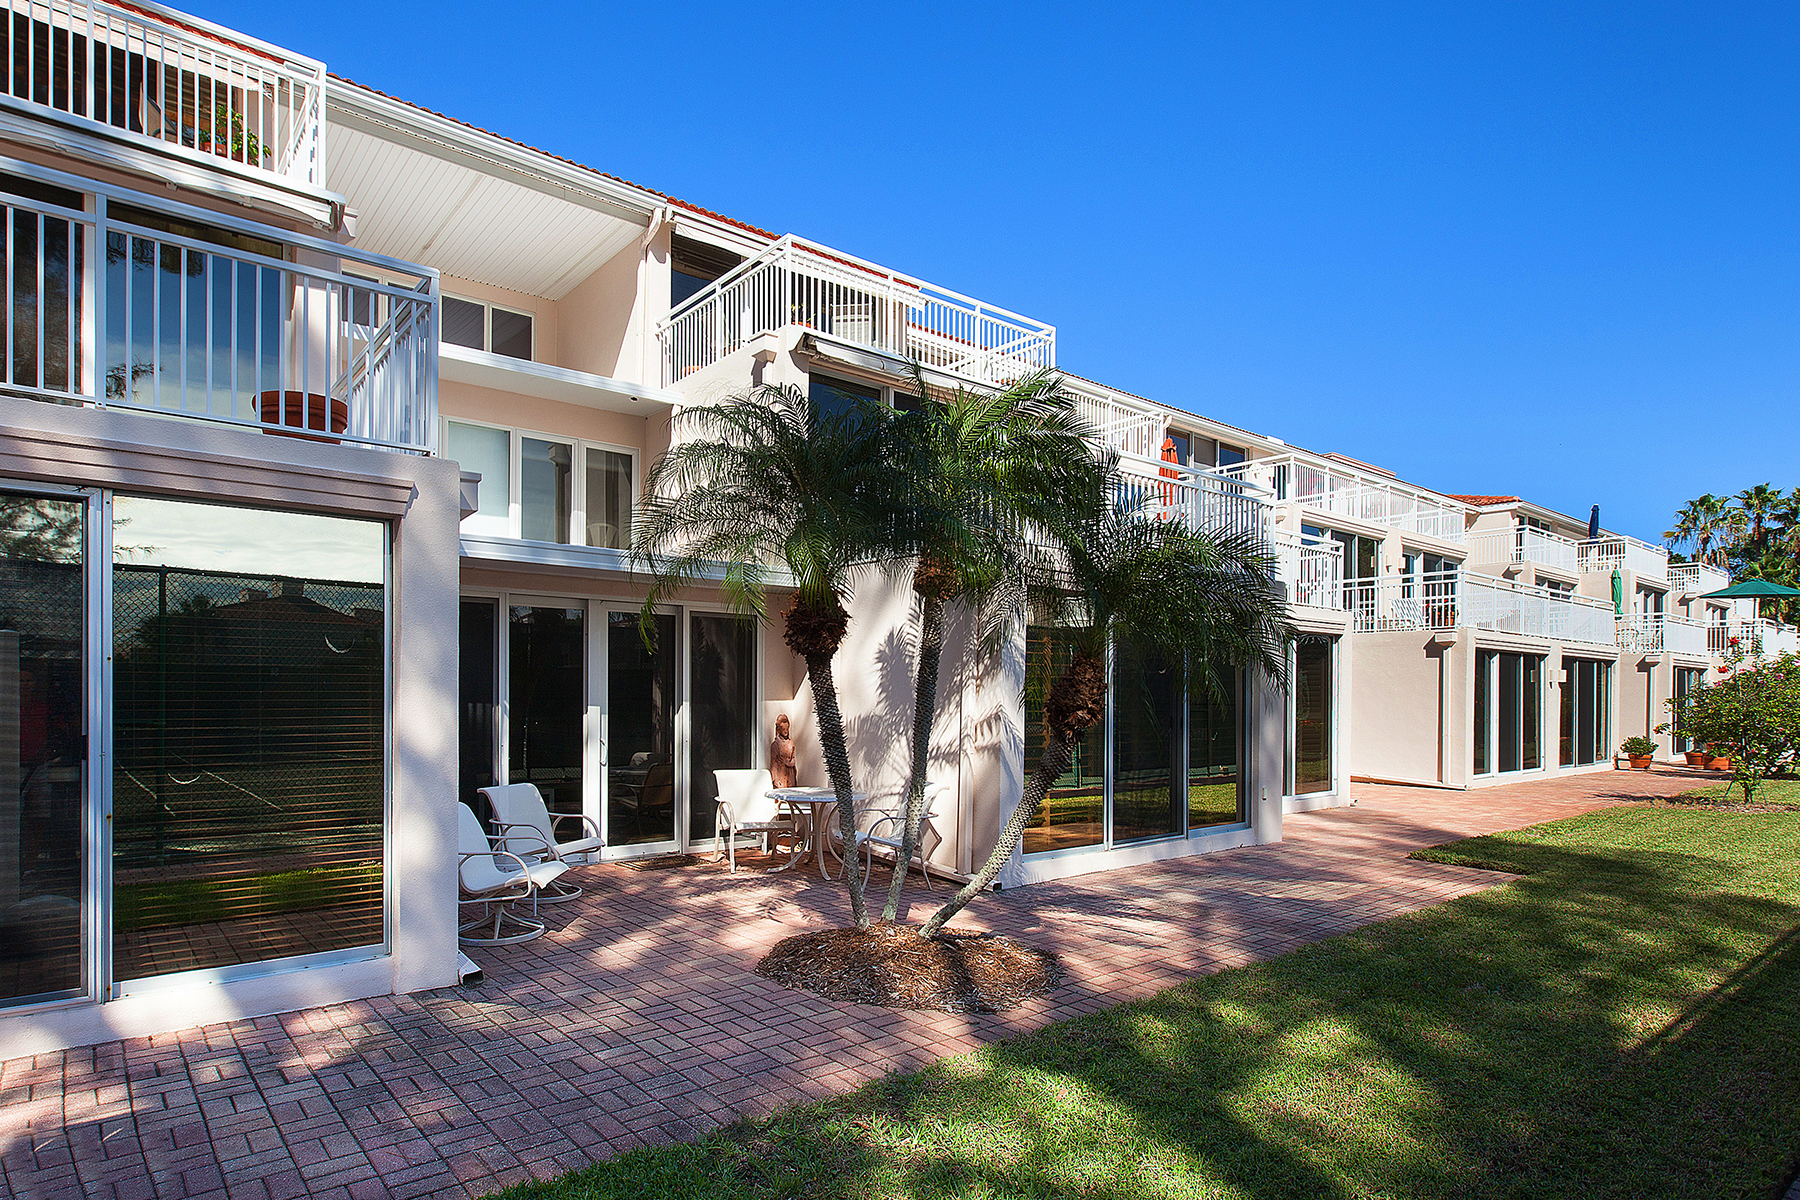 Condominium for Sale at CLUB LONGBOAT BEACH AND TENNIS 5055 Gulf Of Mexico Dr 415, Longboat Key, Florida, 34228 United States